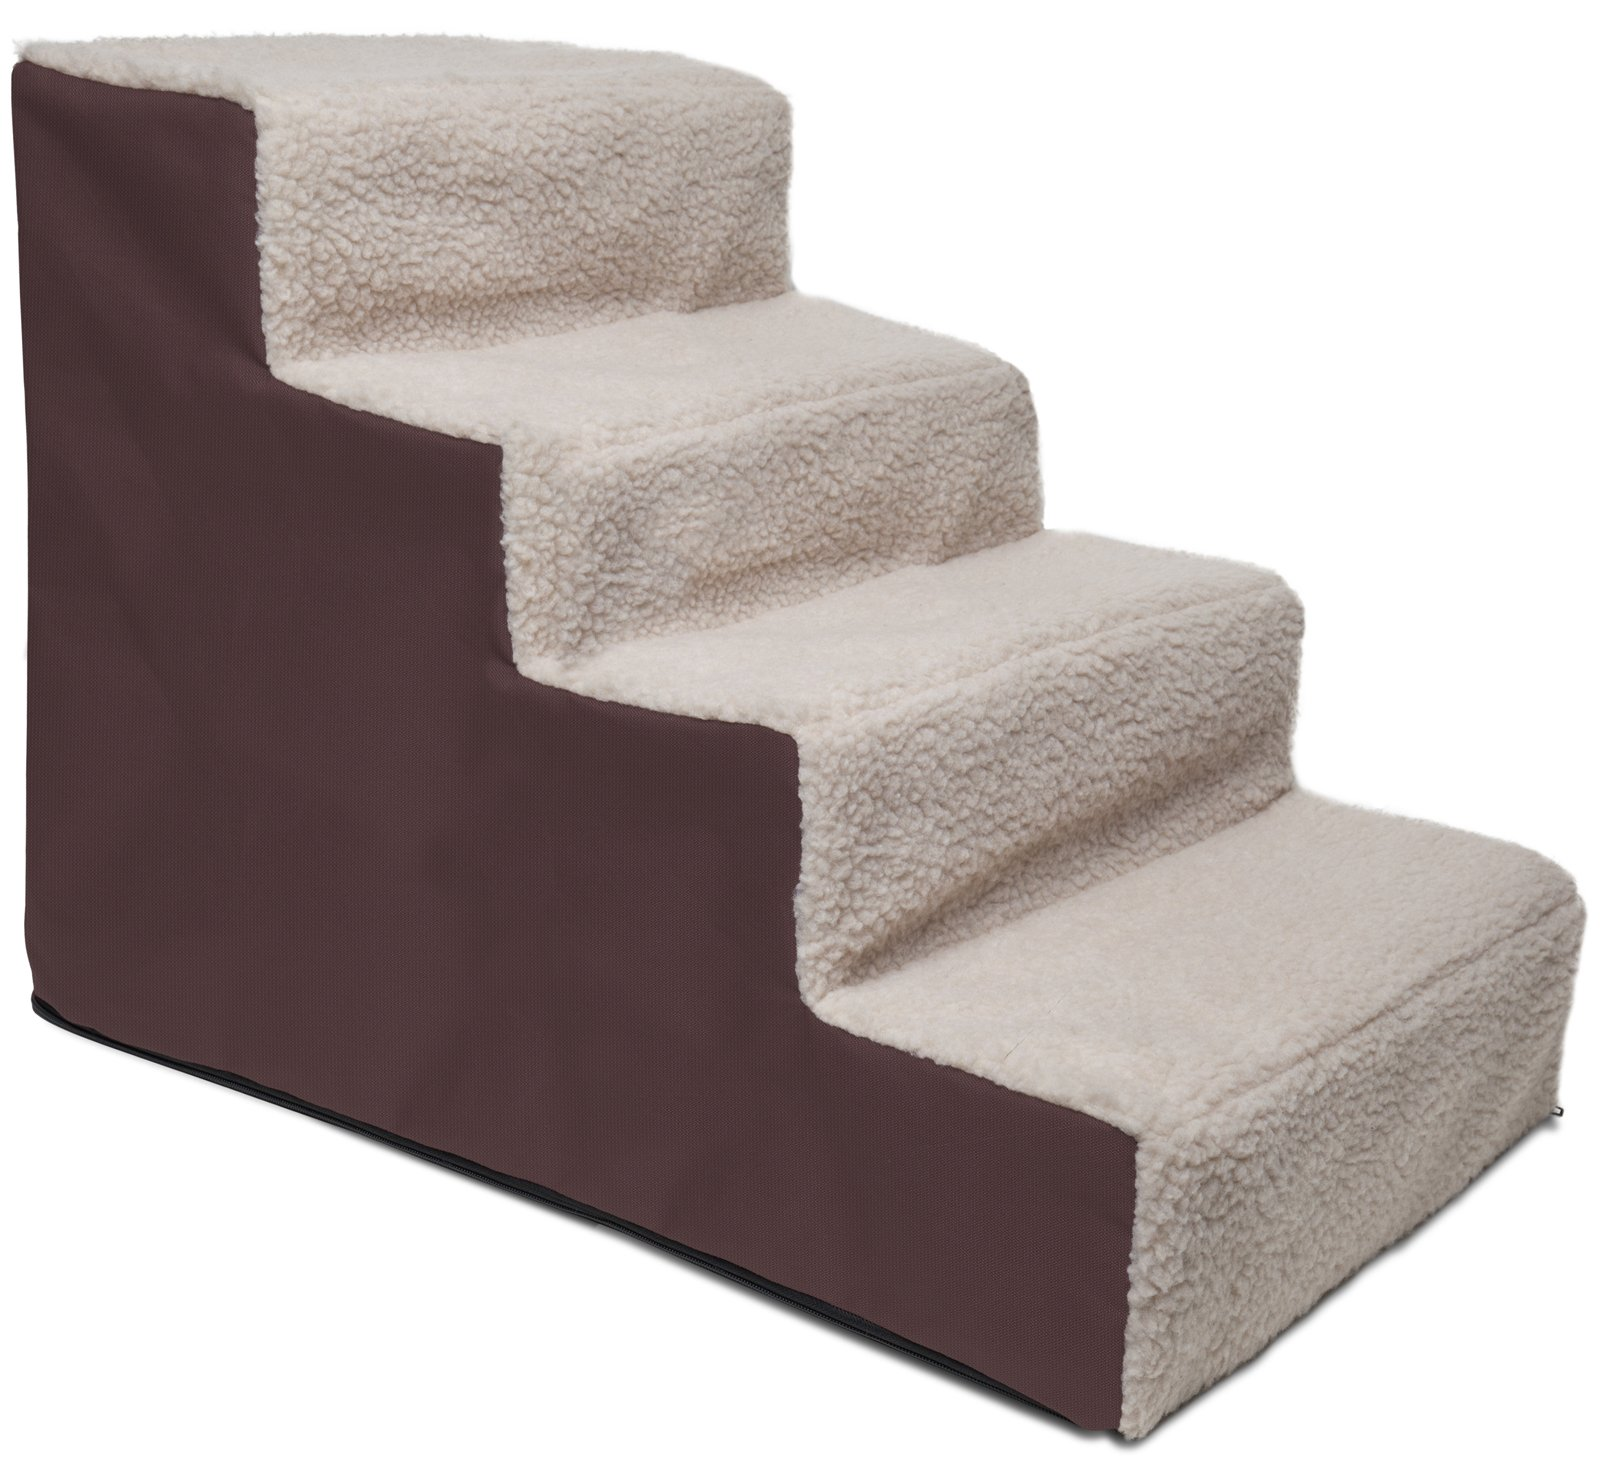 Paws & Pals Dog Stairs to get on High Bed for Cat and Pet Steps at Home or Portable Travel Up to 175 lbs - Brown by Paws & Pals